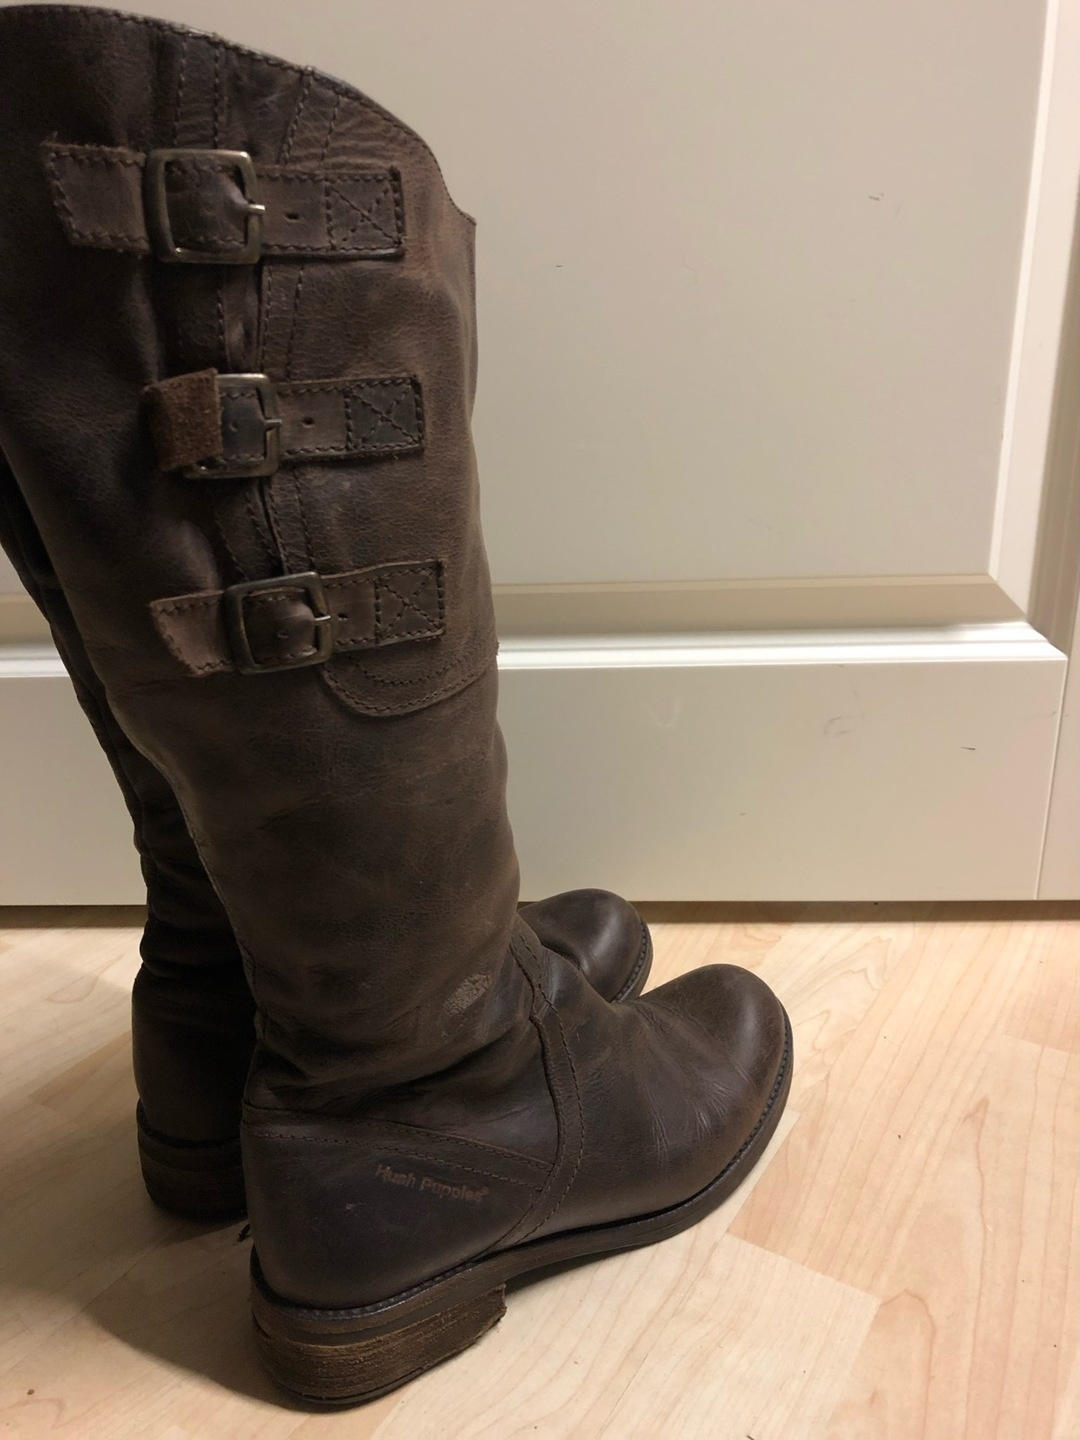 Women's boots - HUSH PUPPIES photo 2